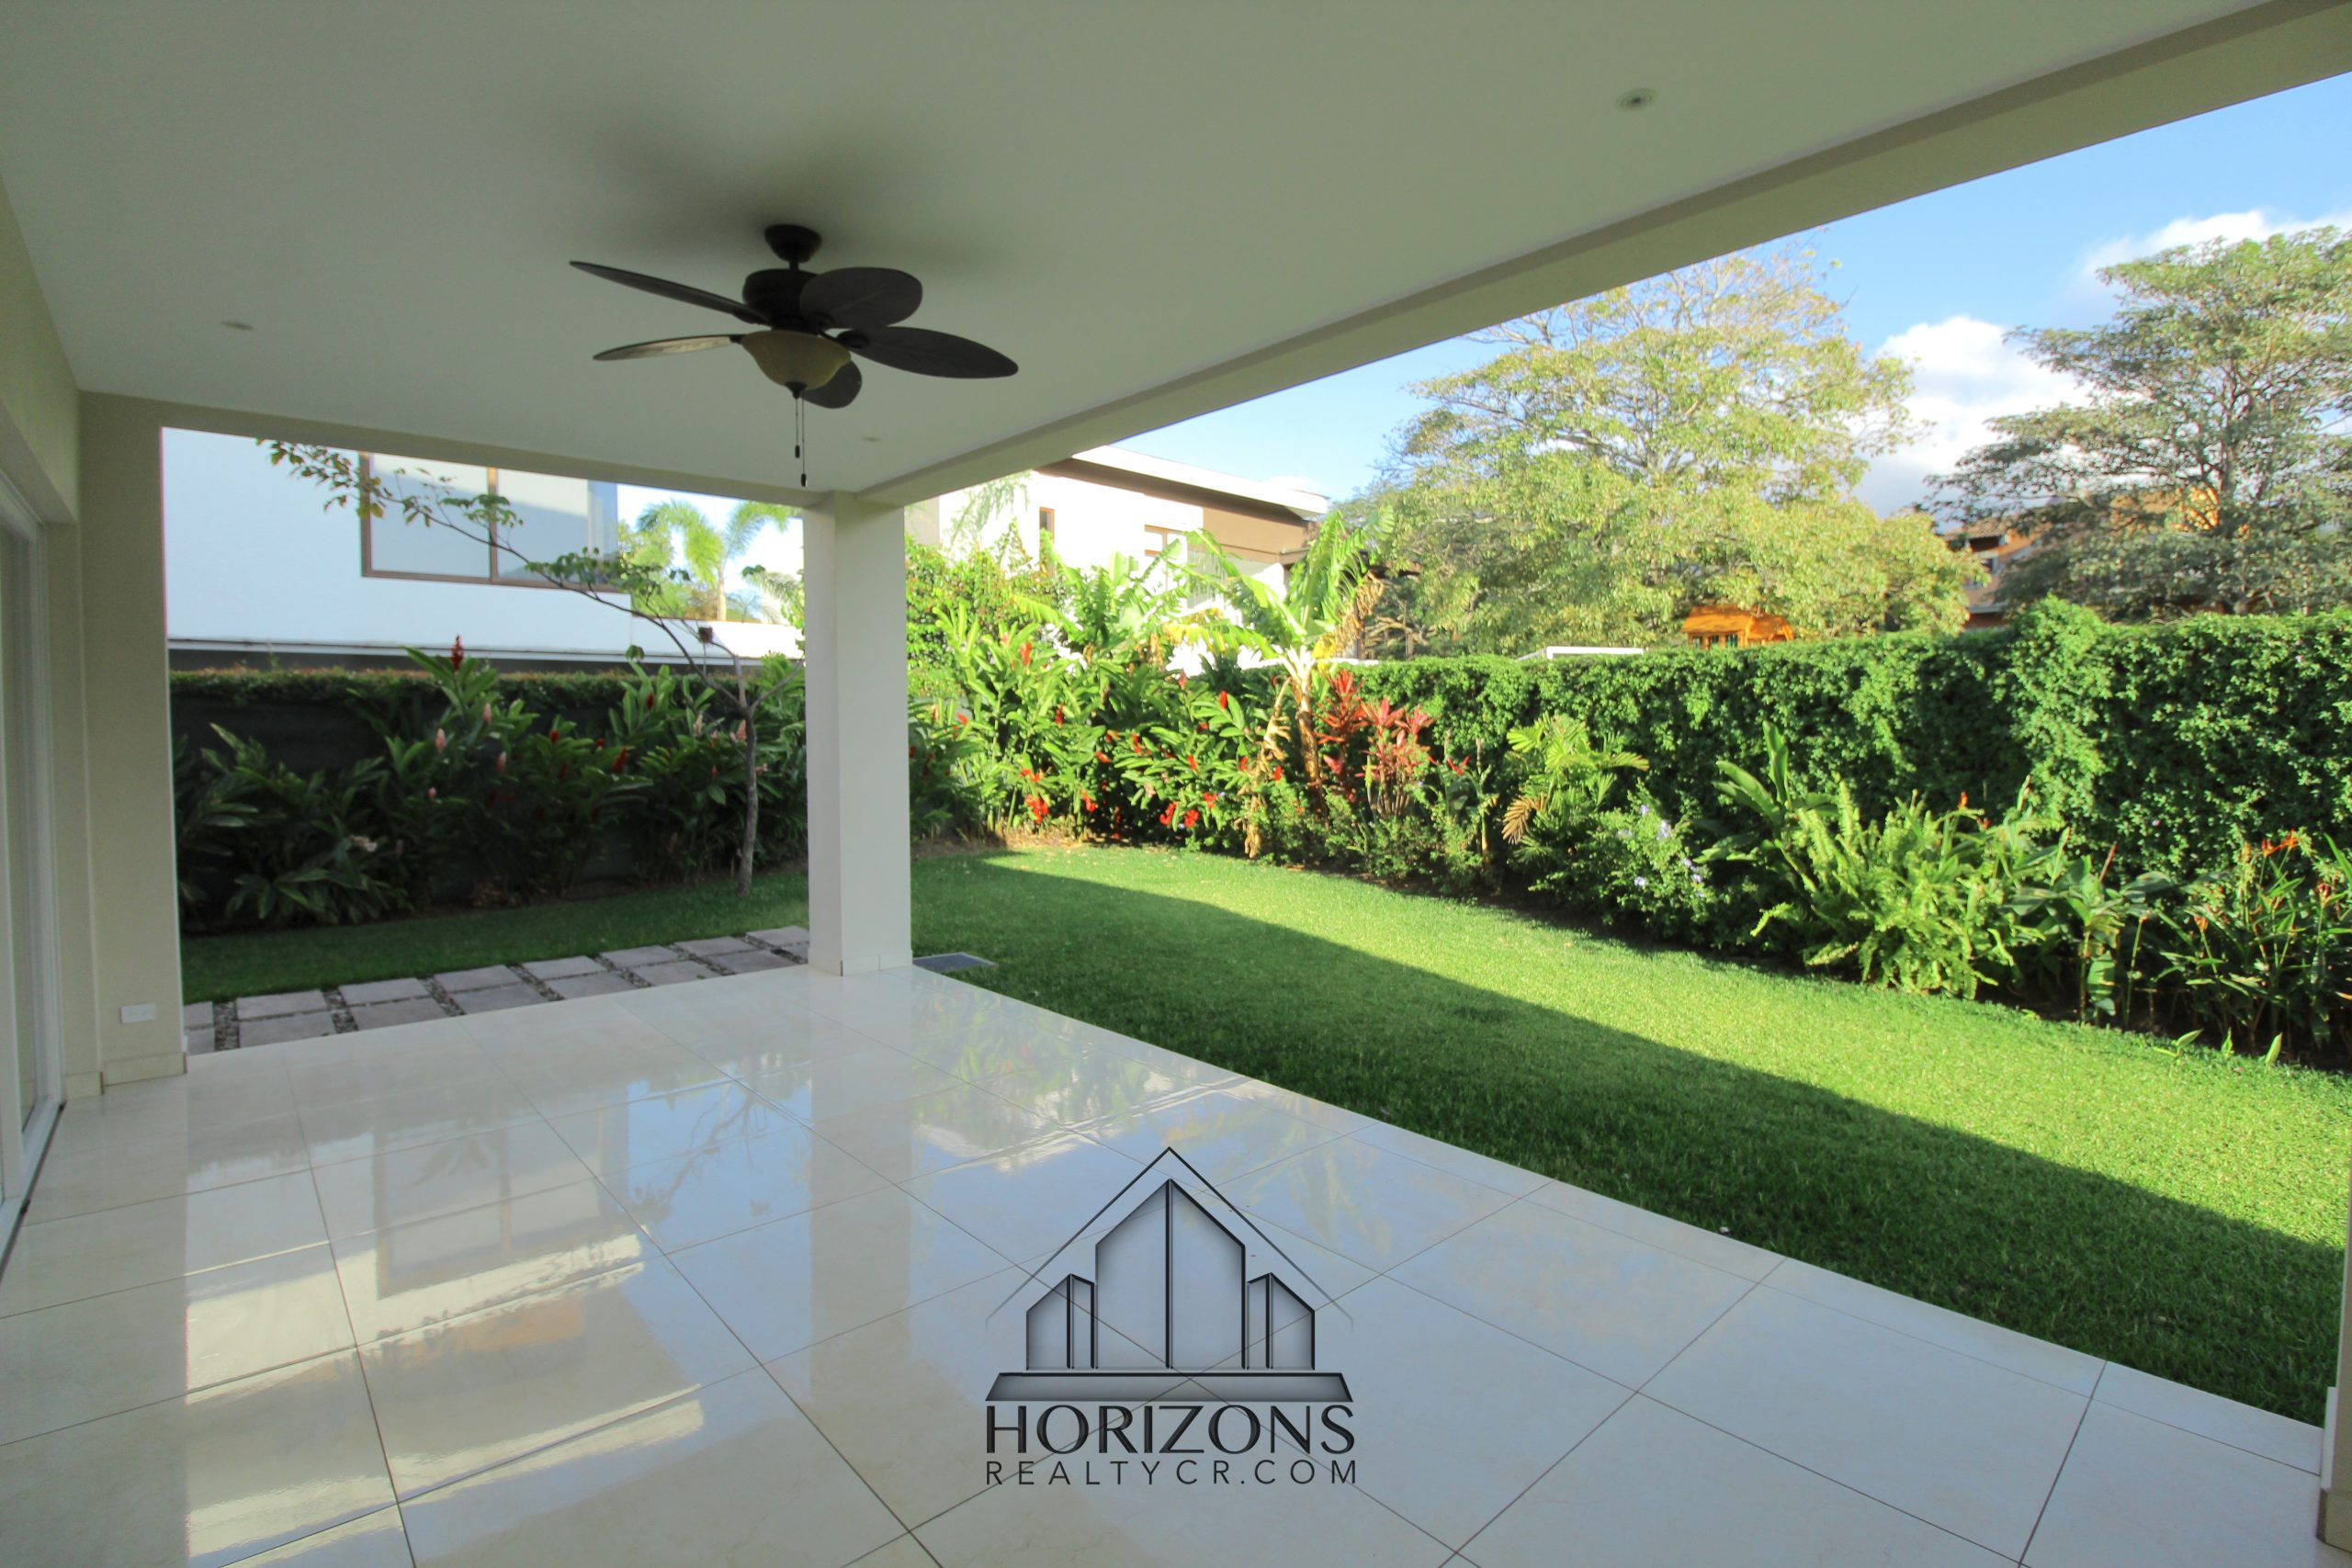 LUXURY HOUSE FOR RENT LOCATED IN SANTA ANA 3 BEDROOMS